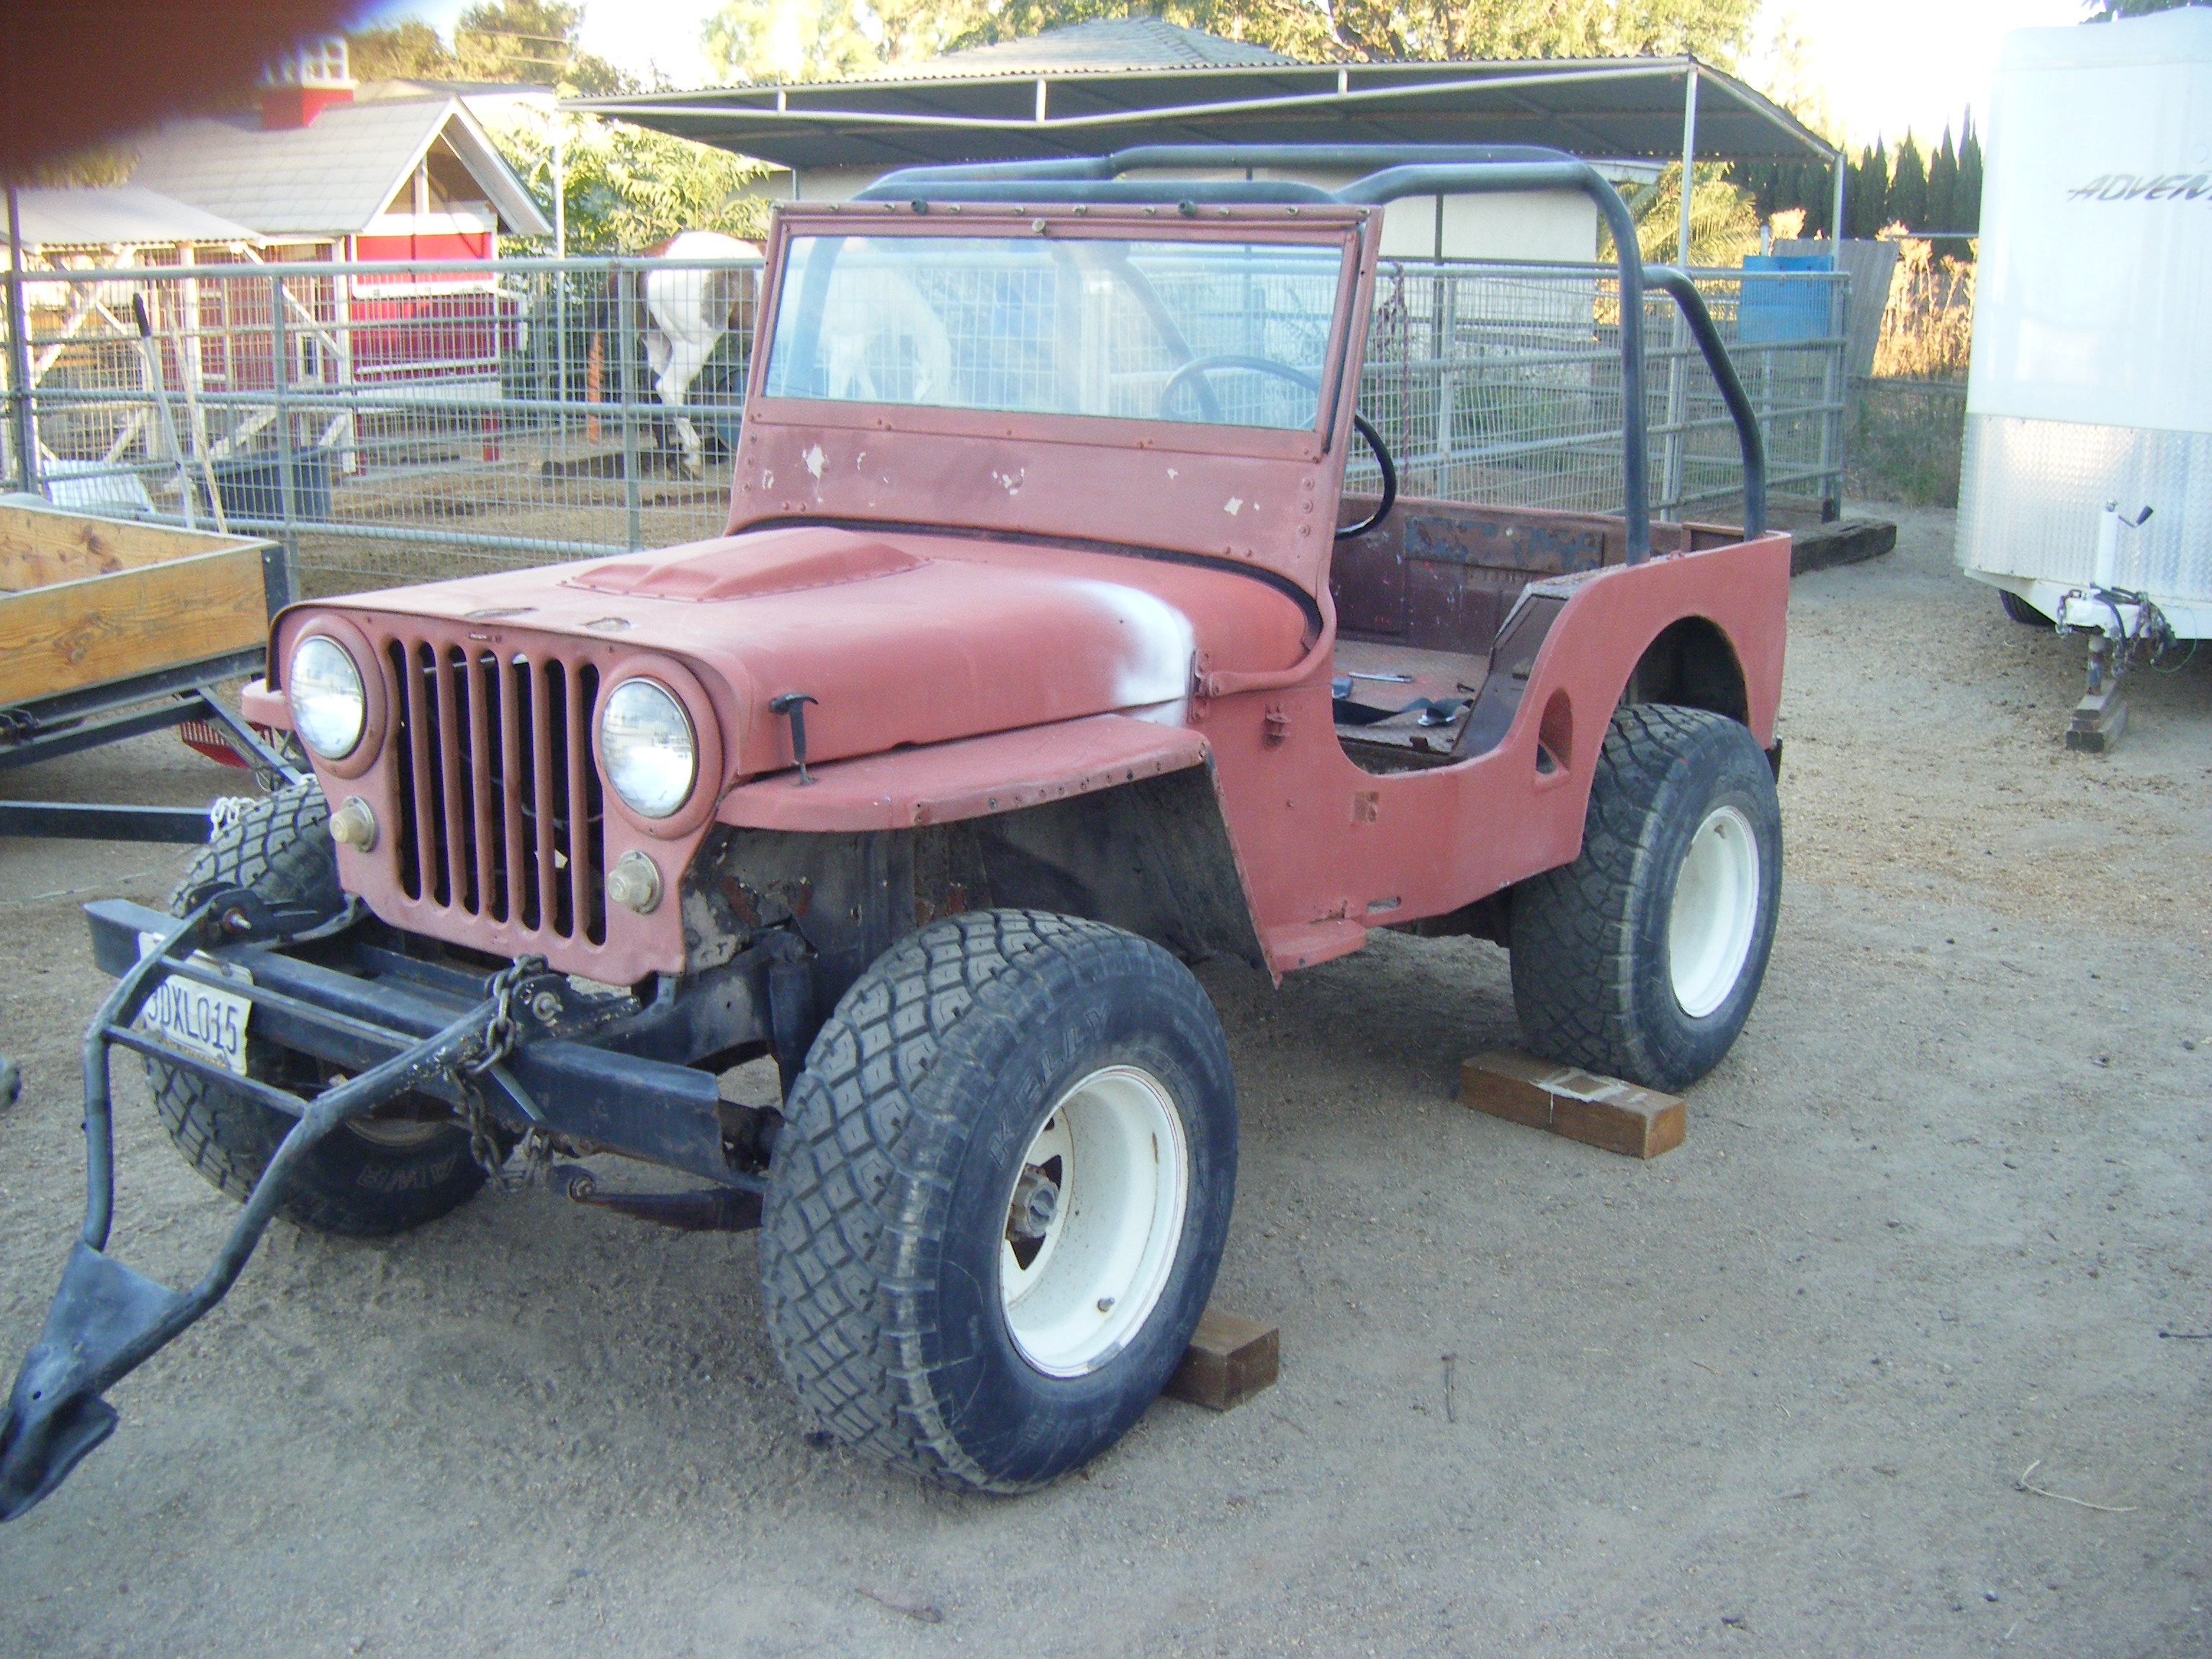 really to cool this old comments got evening ride r in jeep willy